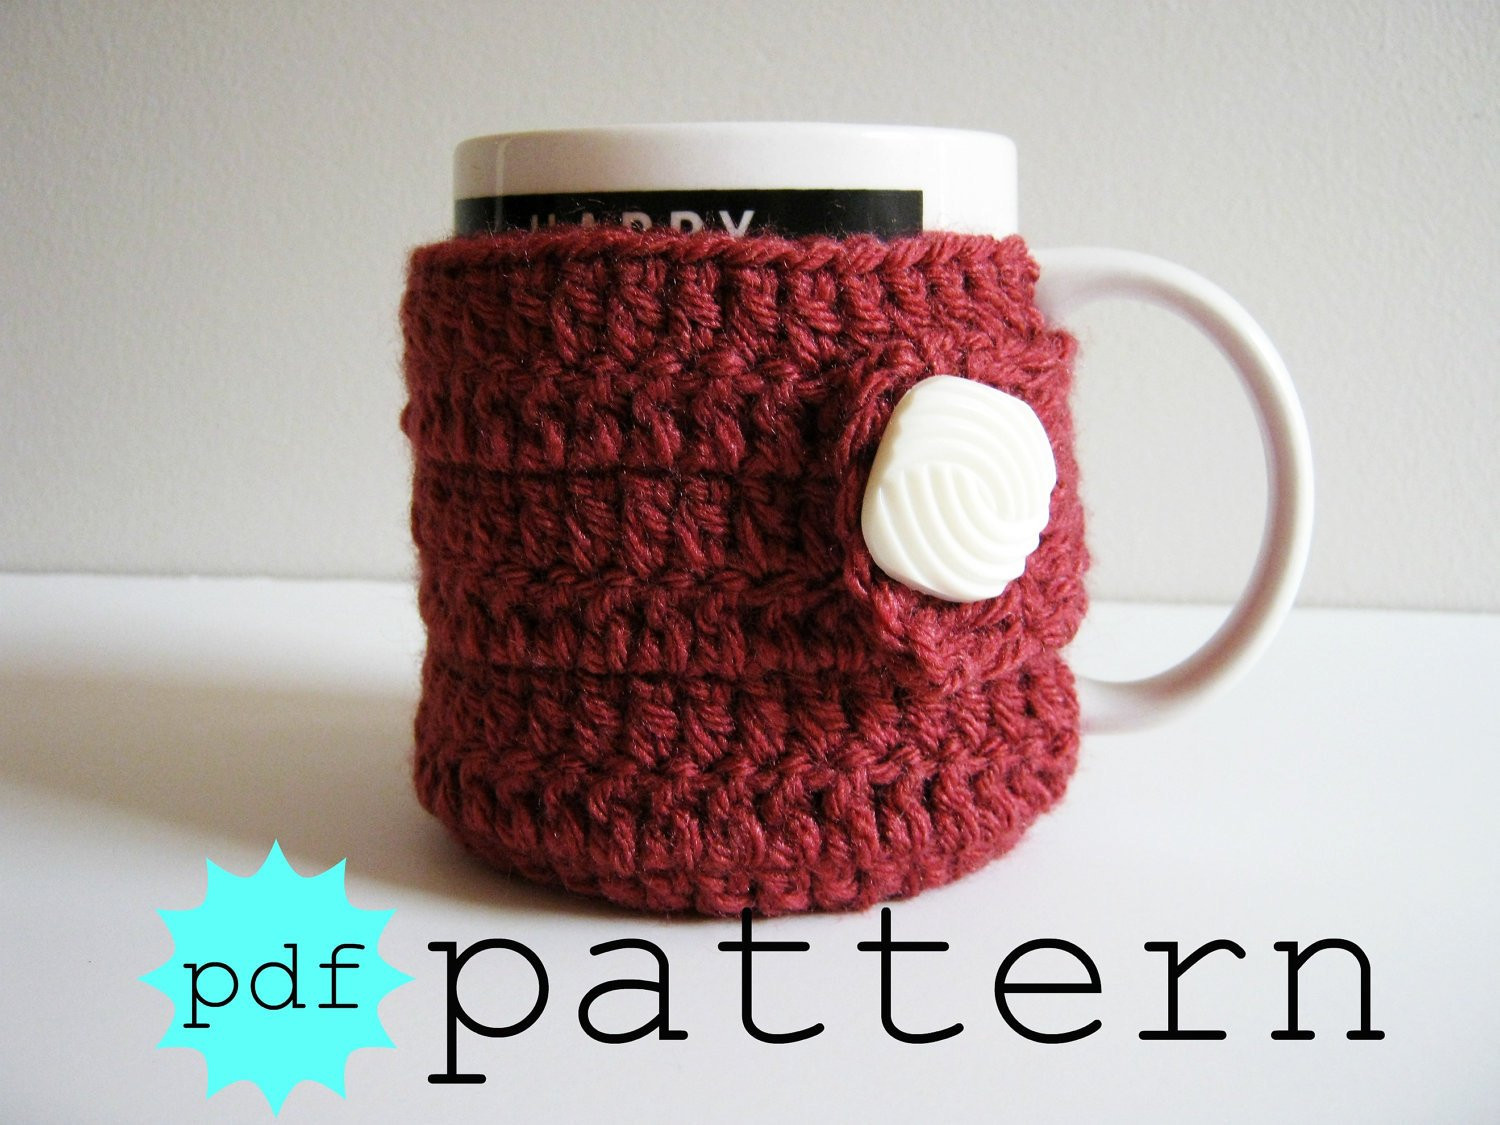 Crochet Coffee Cup Cozy Luxury Pdf Crochet Pattern Coffee Mug Cozy with button by Of Crochet Coffee Cup Cozy Elegant Basketweave Cup Cozy Crochet Pattern with